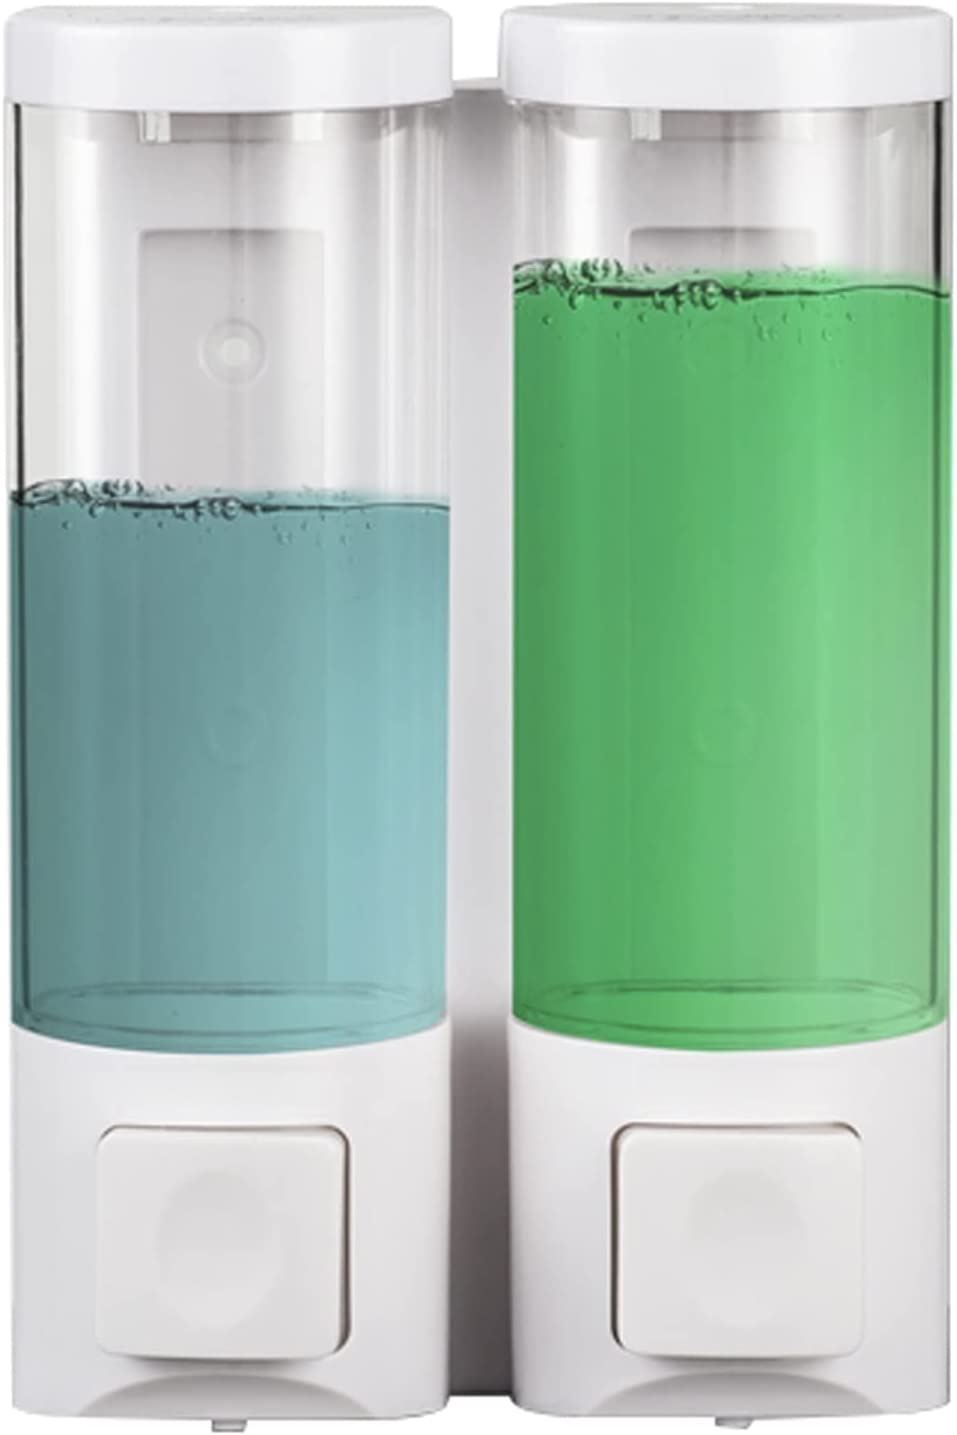 Liushop Soap Dispensers excellence free shipping White Manual Dispenser Transparent